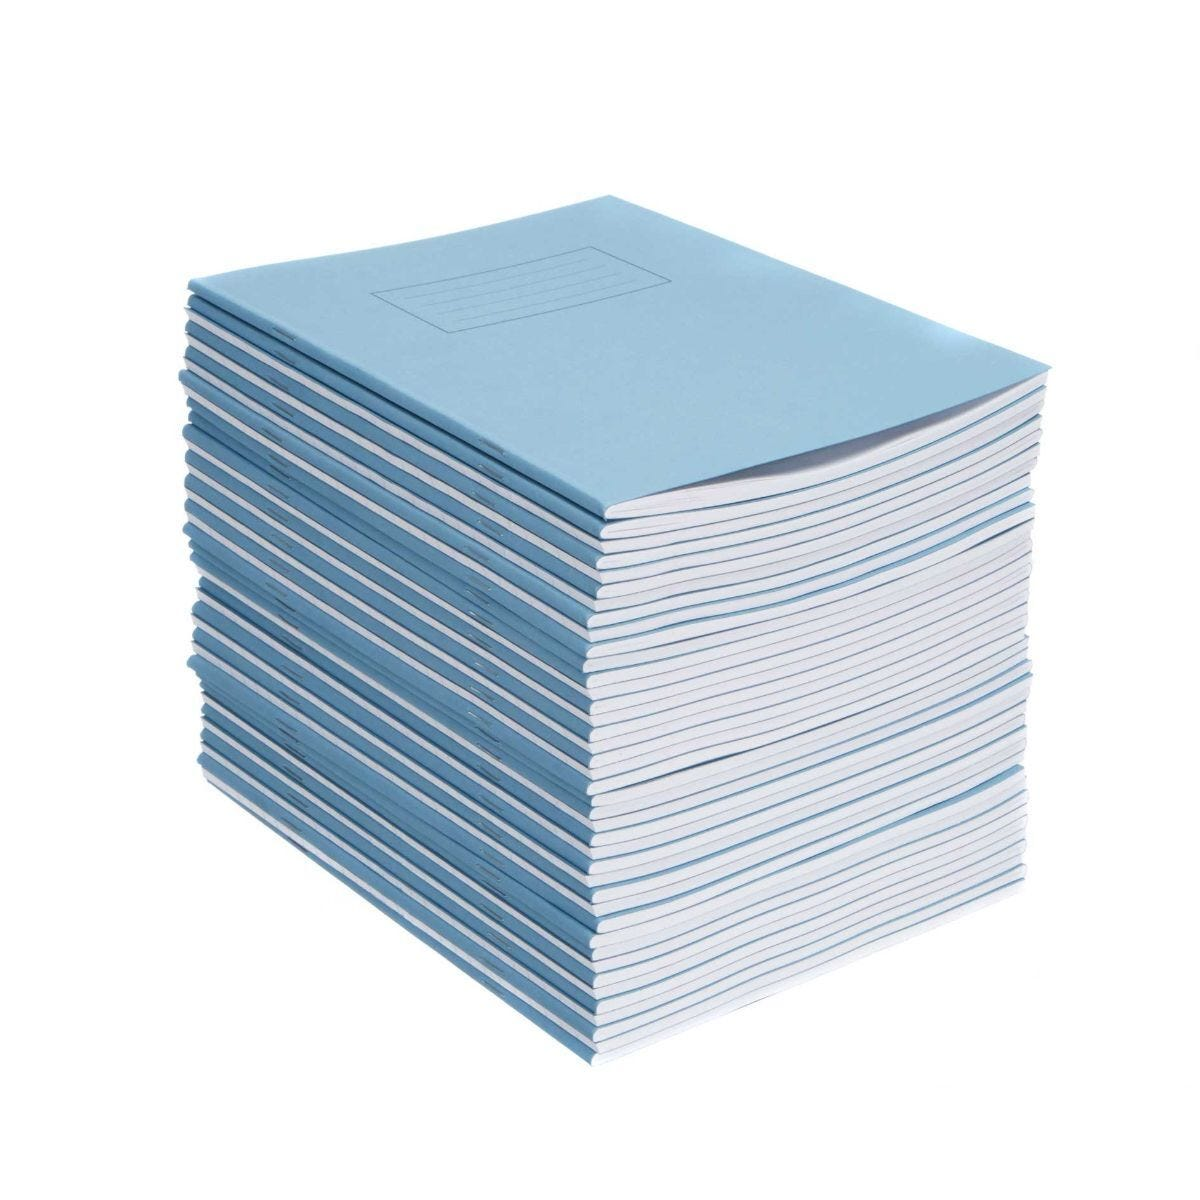 Silvine Exercise Book 9 Inch x 7 Inch Ruled 75gsm Pack of 40 Blue